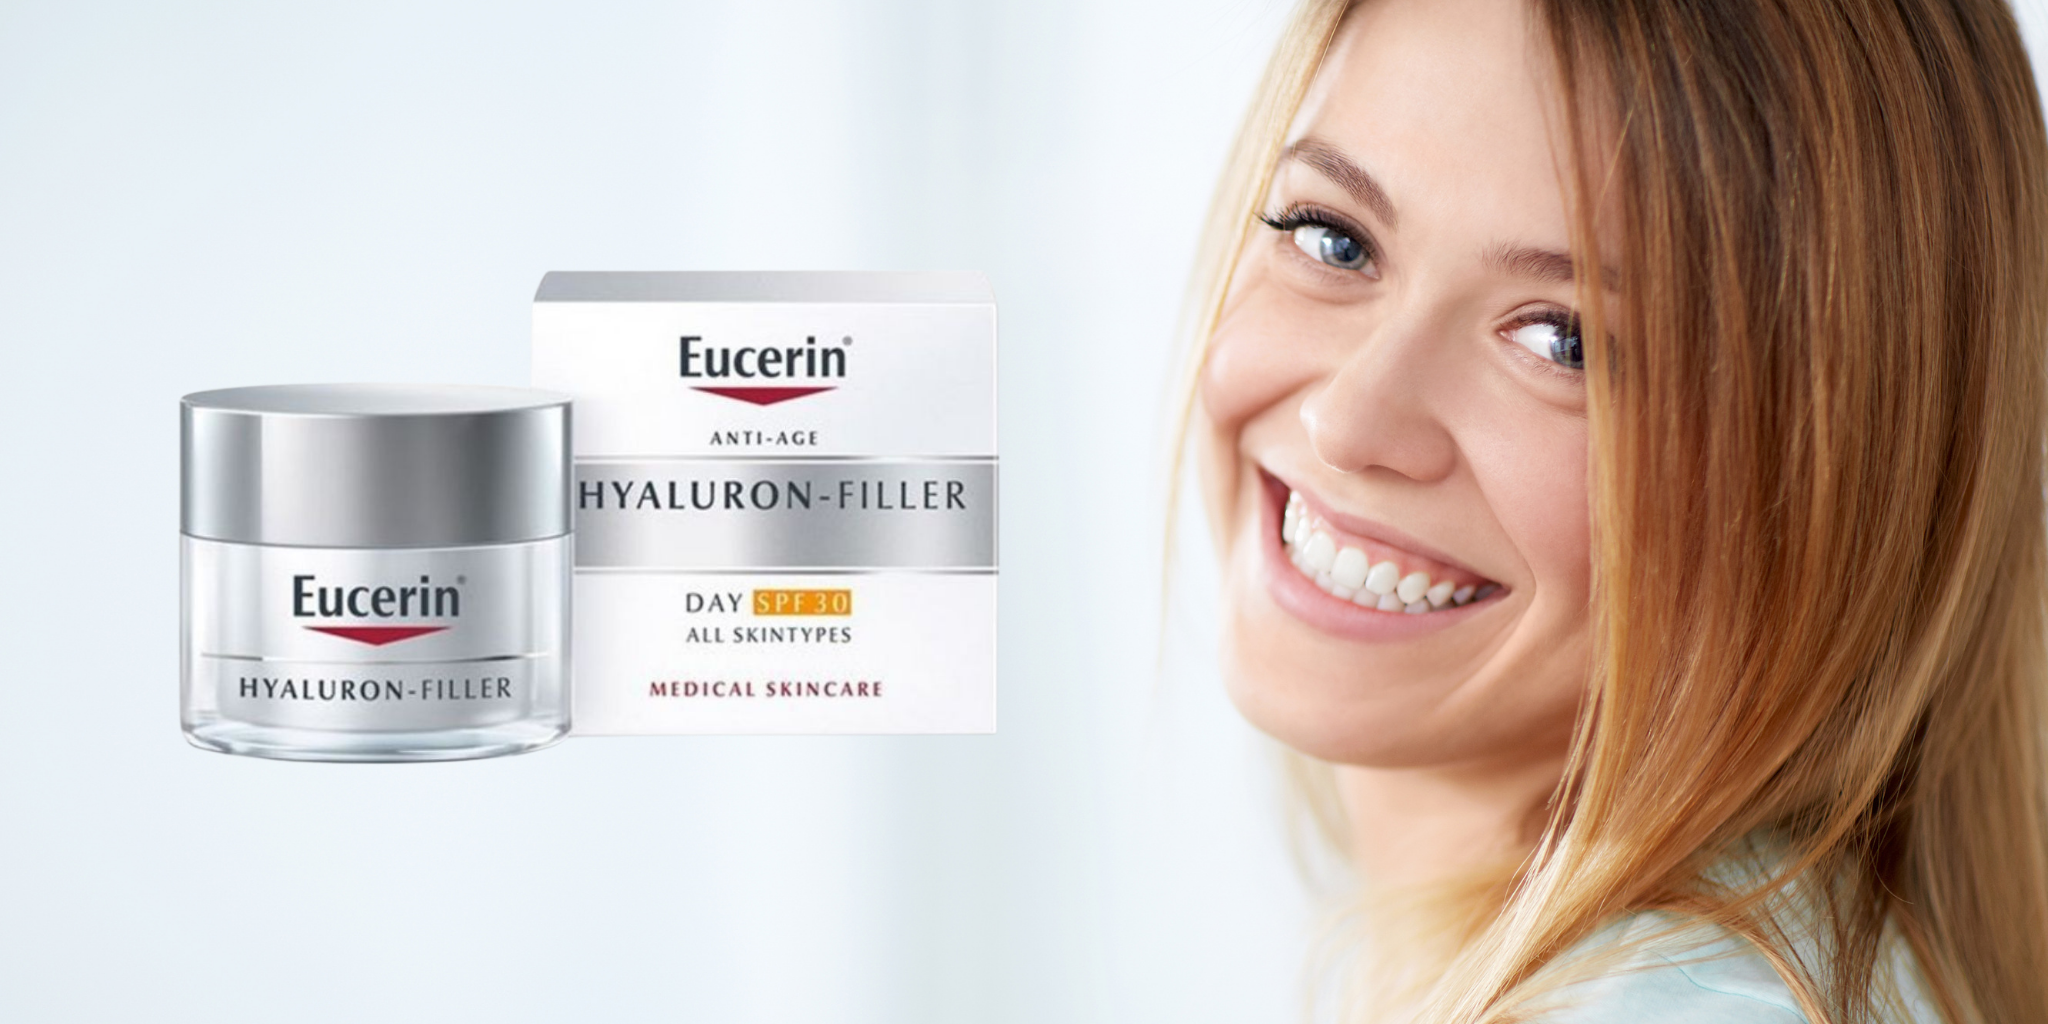 All you need to know about Eucerin Hyaluron Filler